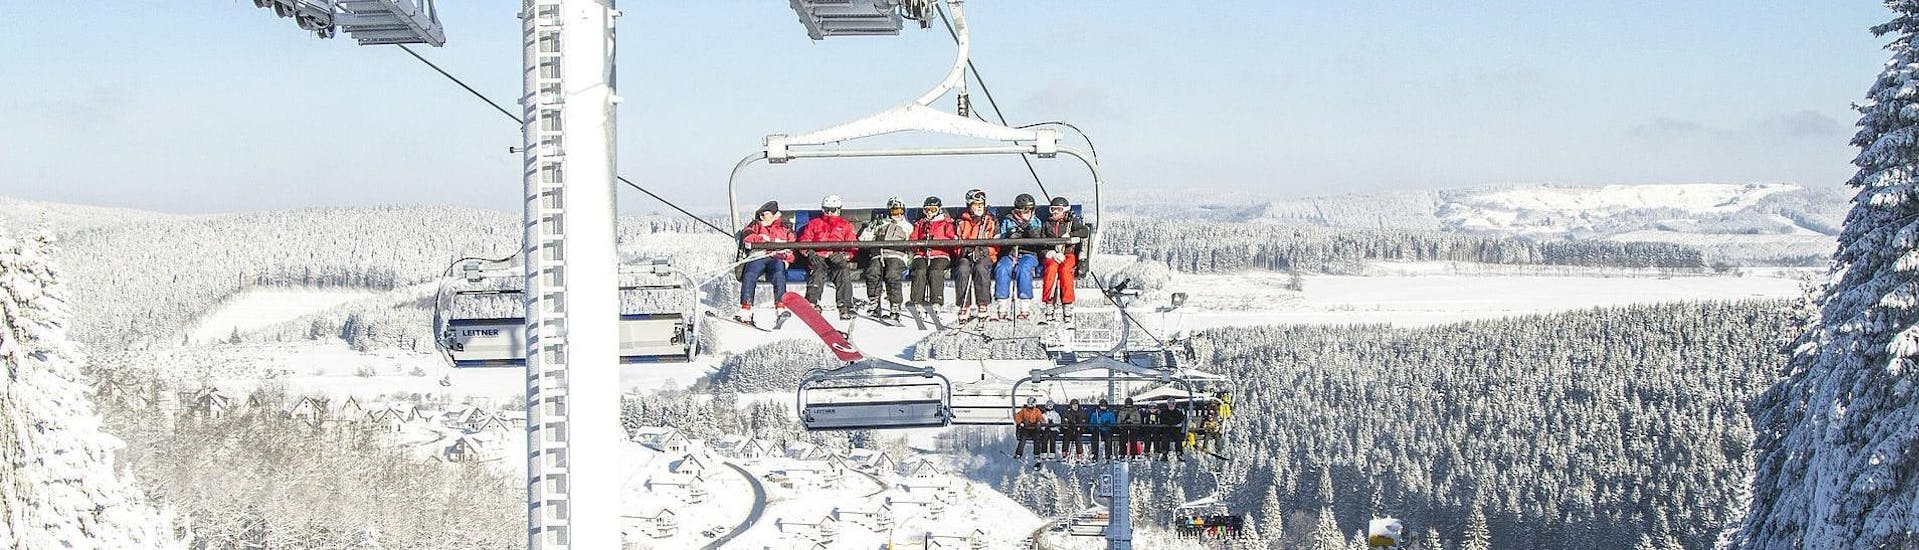 A group of skiers taking a chair lift to the top of a mountain to start one of their ski lessons with Skischule Kahler Asten in the ski resort of Winterberg.